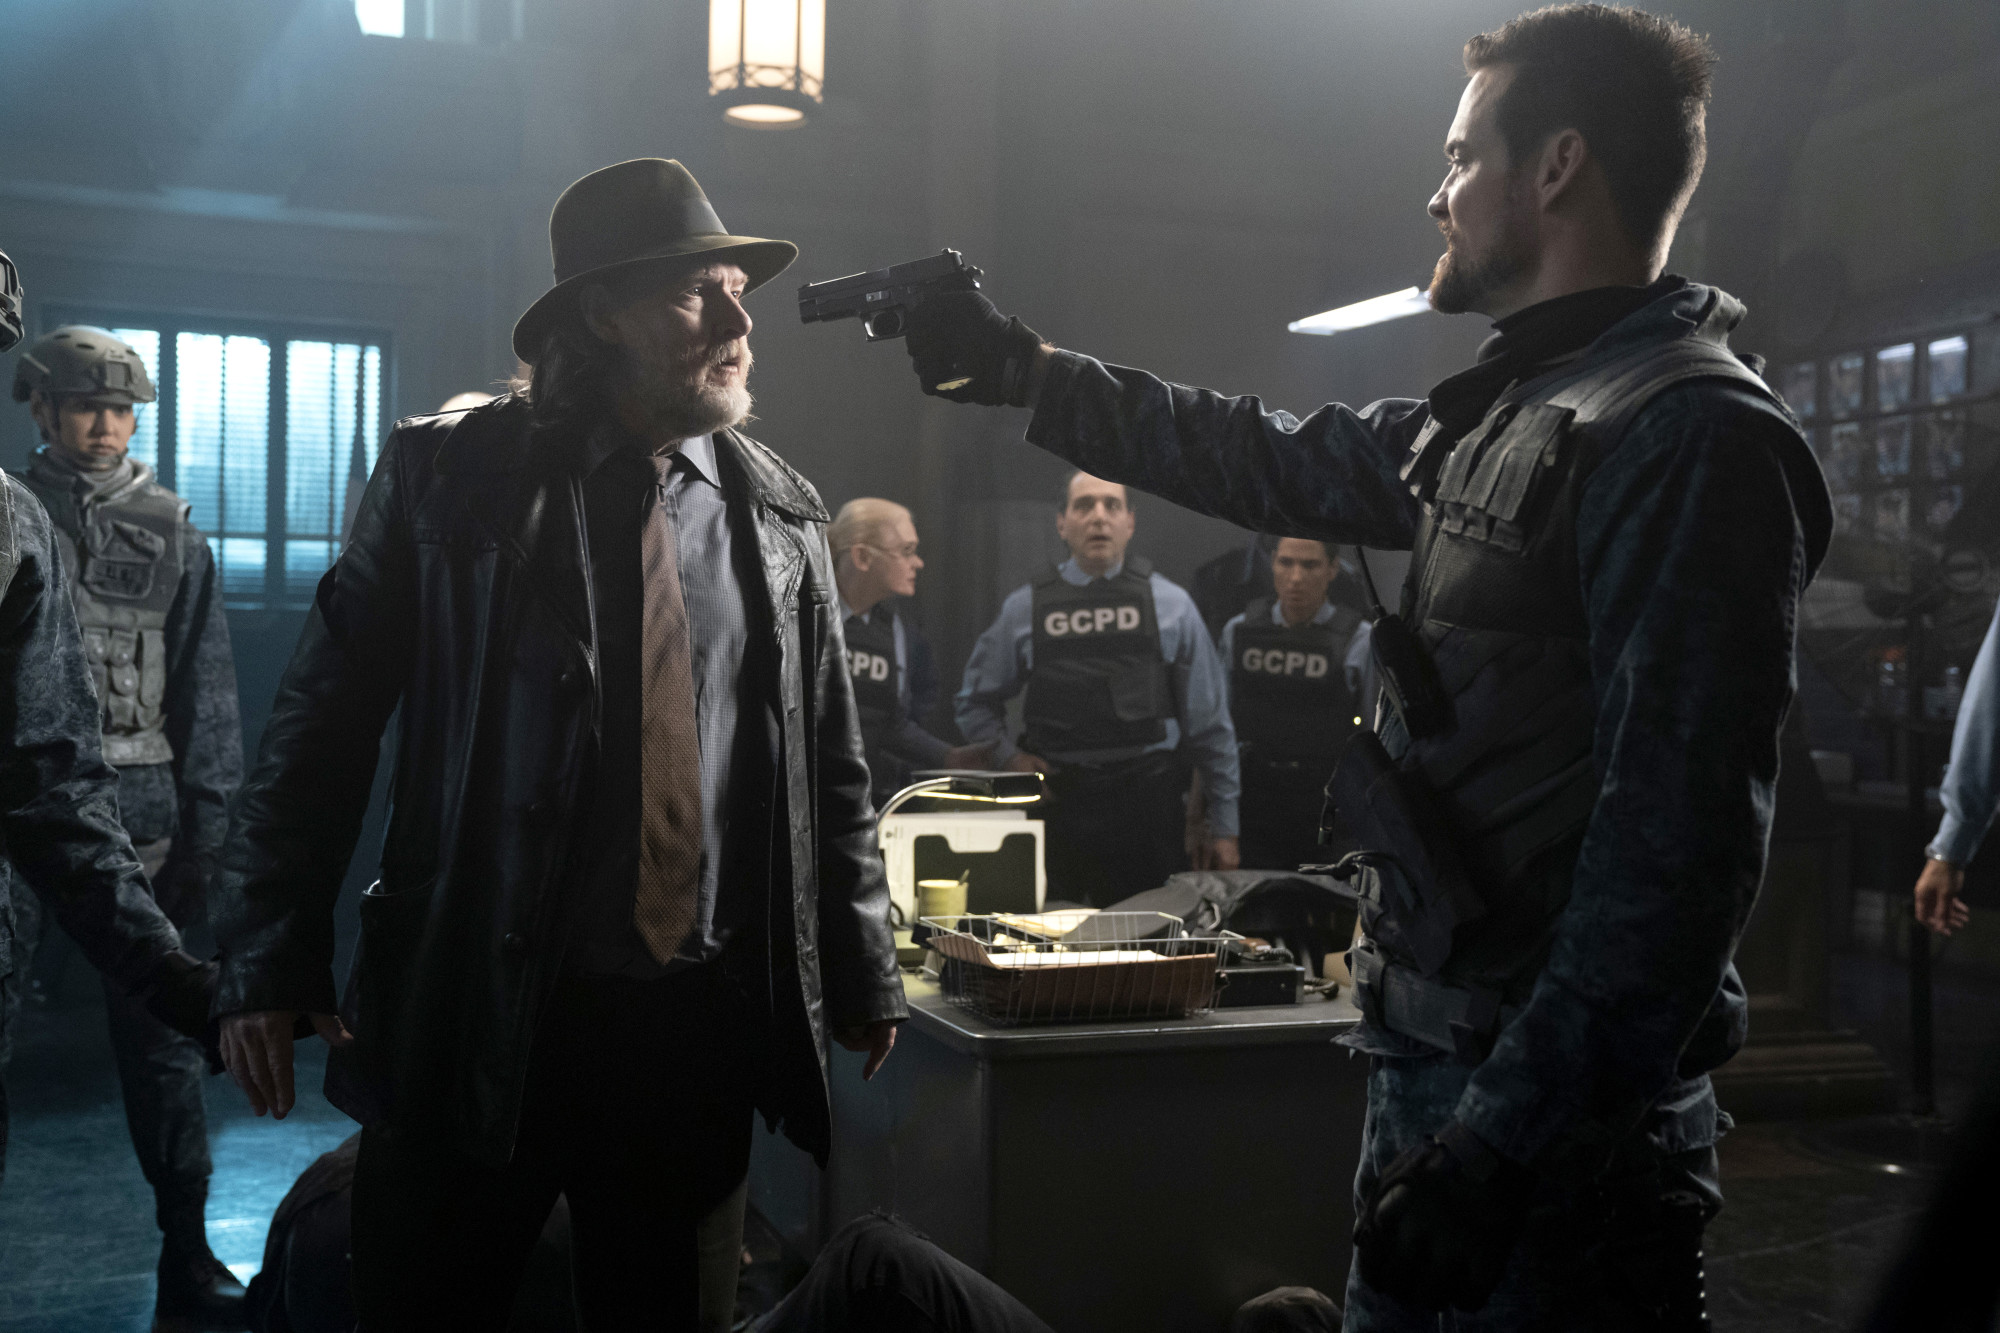 """GOTHAM: L-R: Donal Logue and Shane West in the """"13 Stitches"""" episode of GOTHAM airing Thursday, Feb. 14 (8:00-9:00 PM ET/PT) on FOX. ©2019 Fox Broadcasting Co. Cr: FOX"""